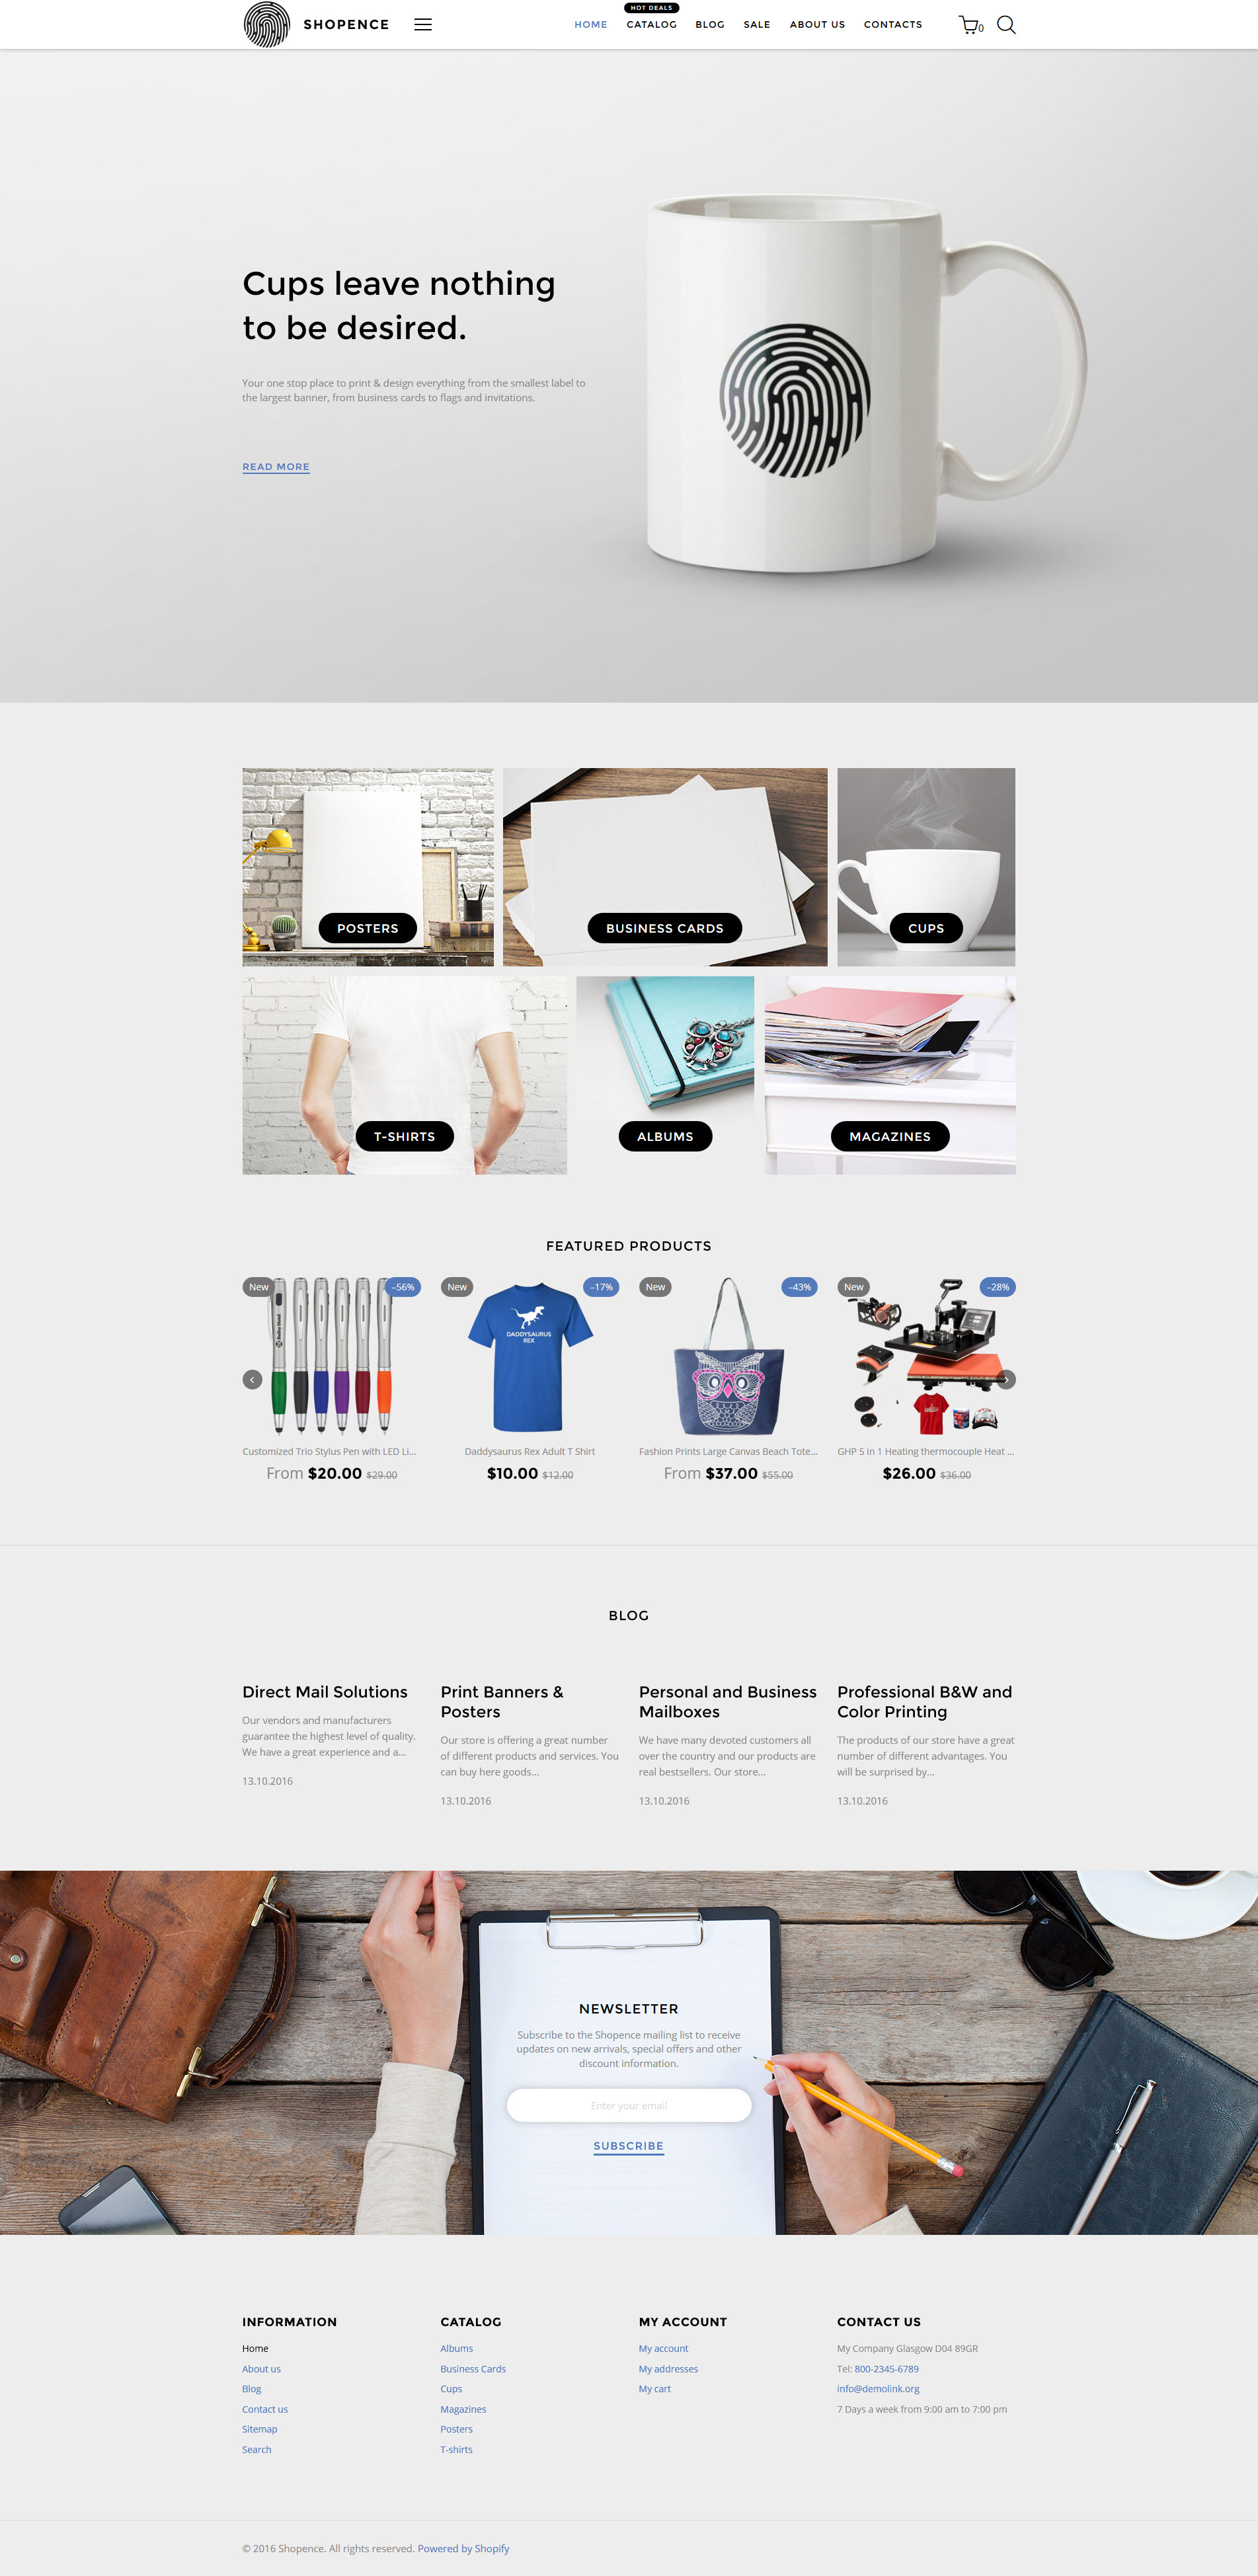 Shopence - Printing Shop & Printing Company Shopify Theme - screenshot